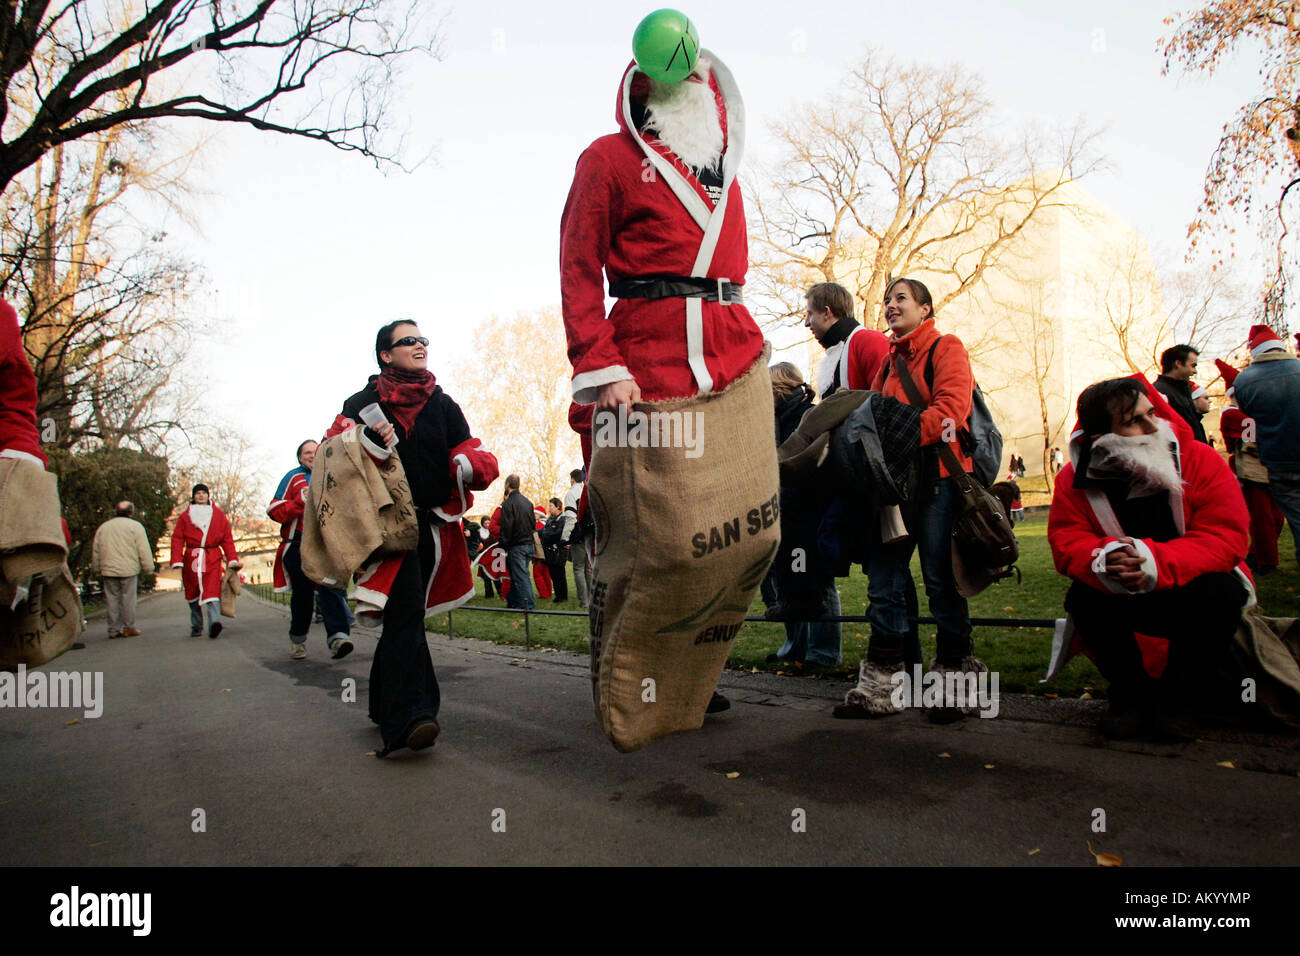 Students disguised as santa claus doing a sack-race, Dresden, Saxony, Germany - Stock Image